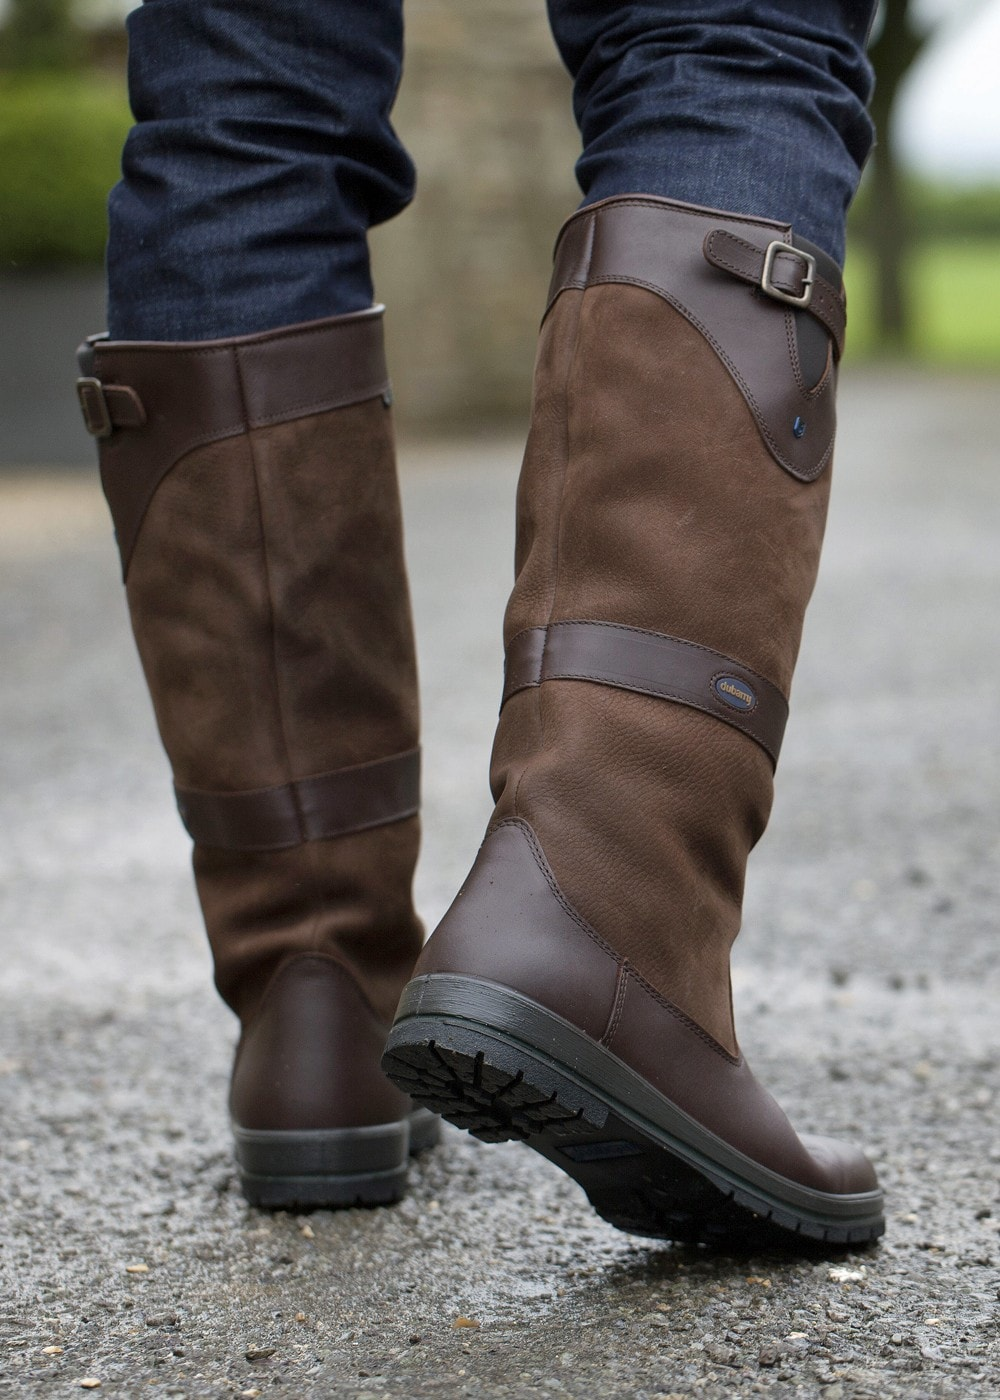 031cc9e5926 Dubarry Tipperary Boots